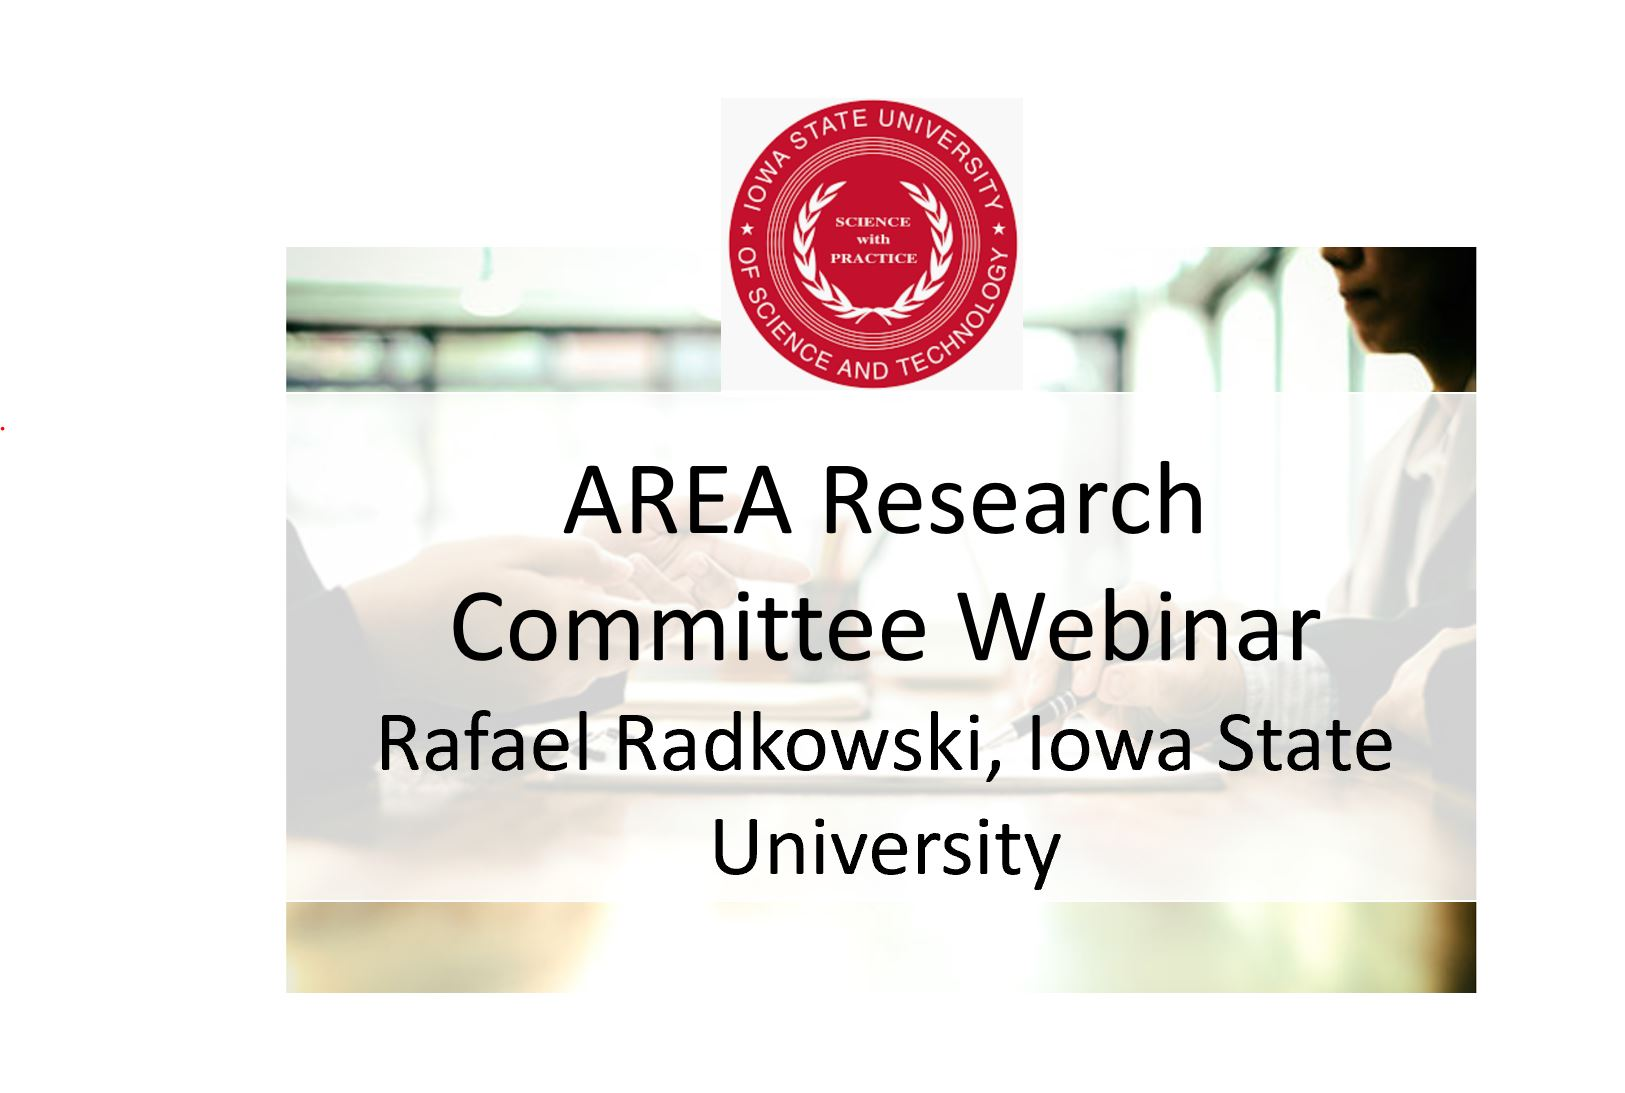 AREA Research Committee Webinar | Current AR Research Projects